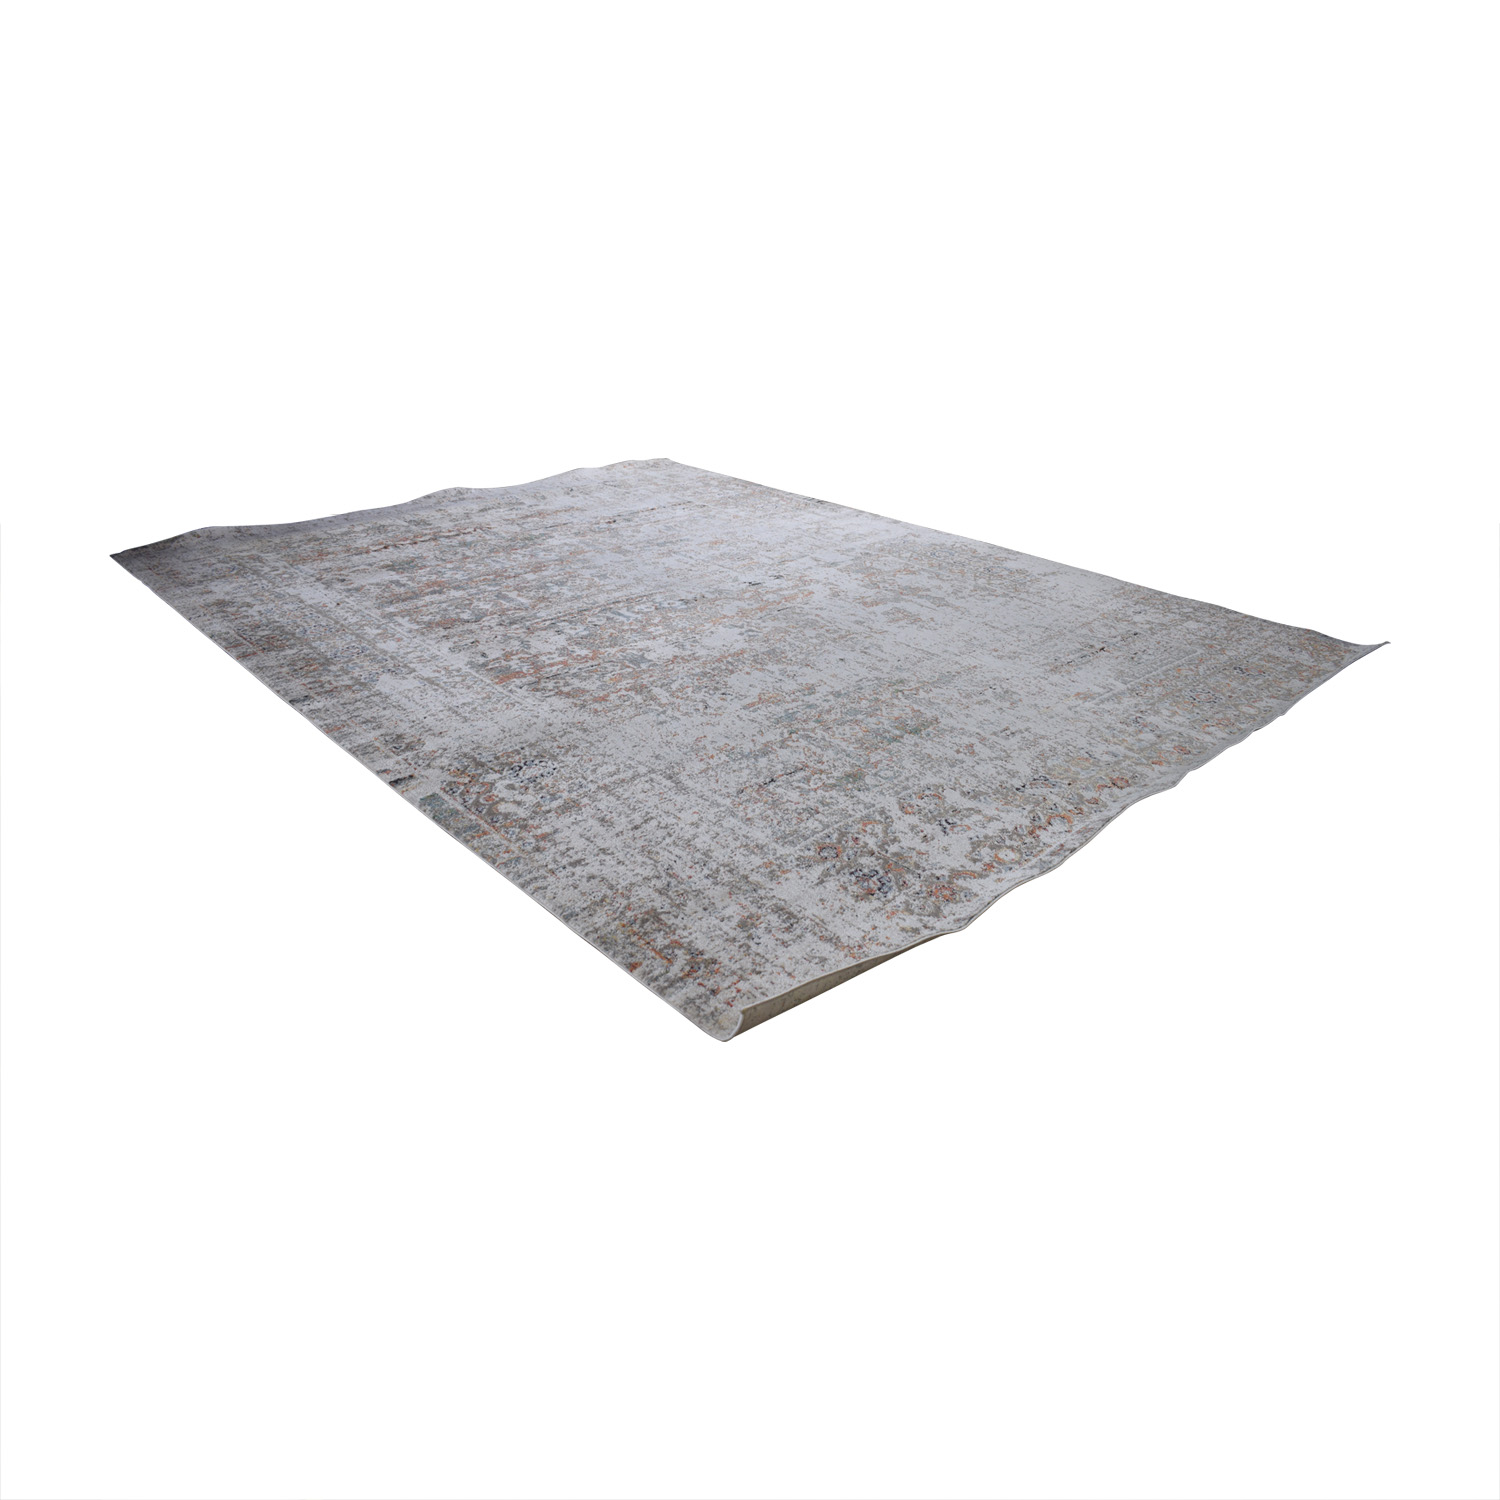 Loloi Rugs Loloi Javari Ivory and Granite Rug Rugs